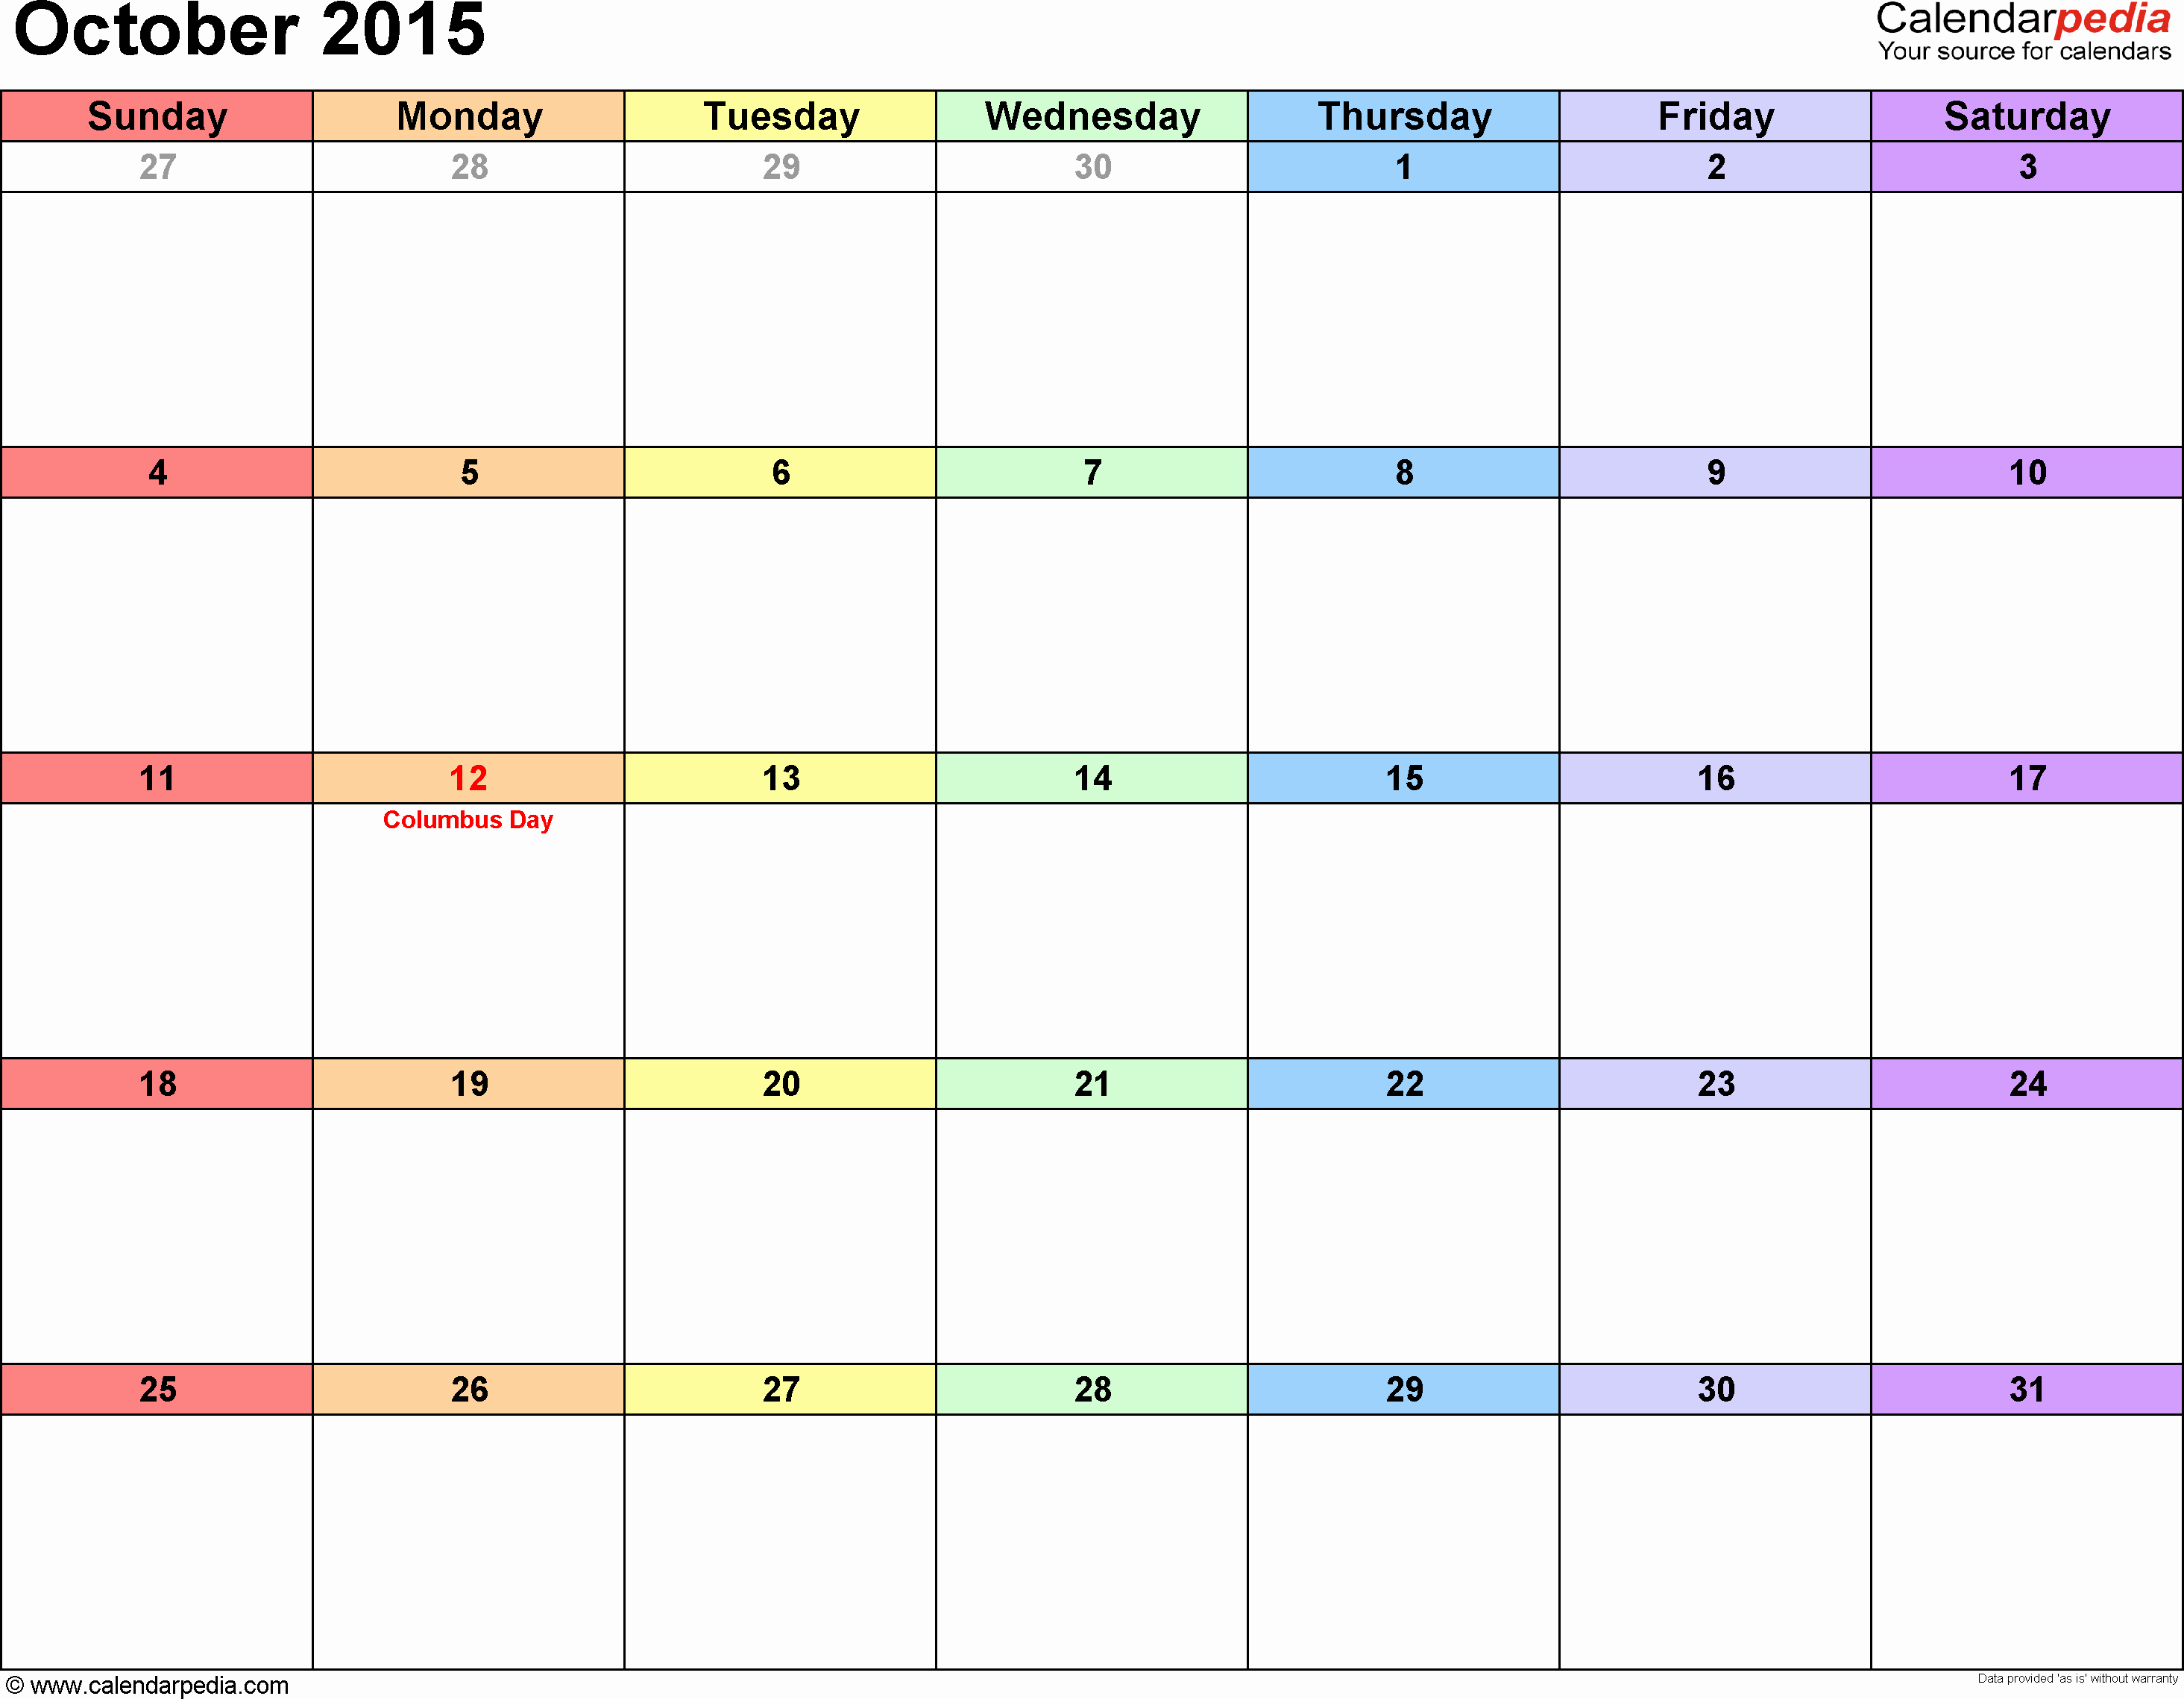 Free Calendar Templates August 2015 Unique October 2015 Calendars for Word Excel & Pdf